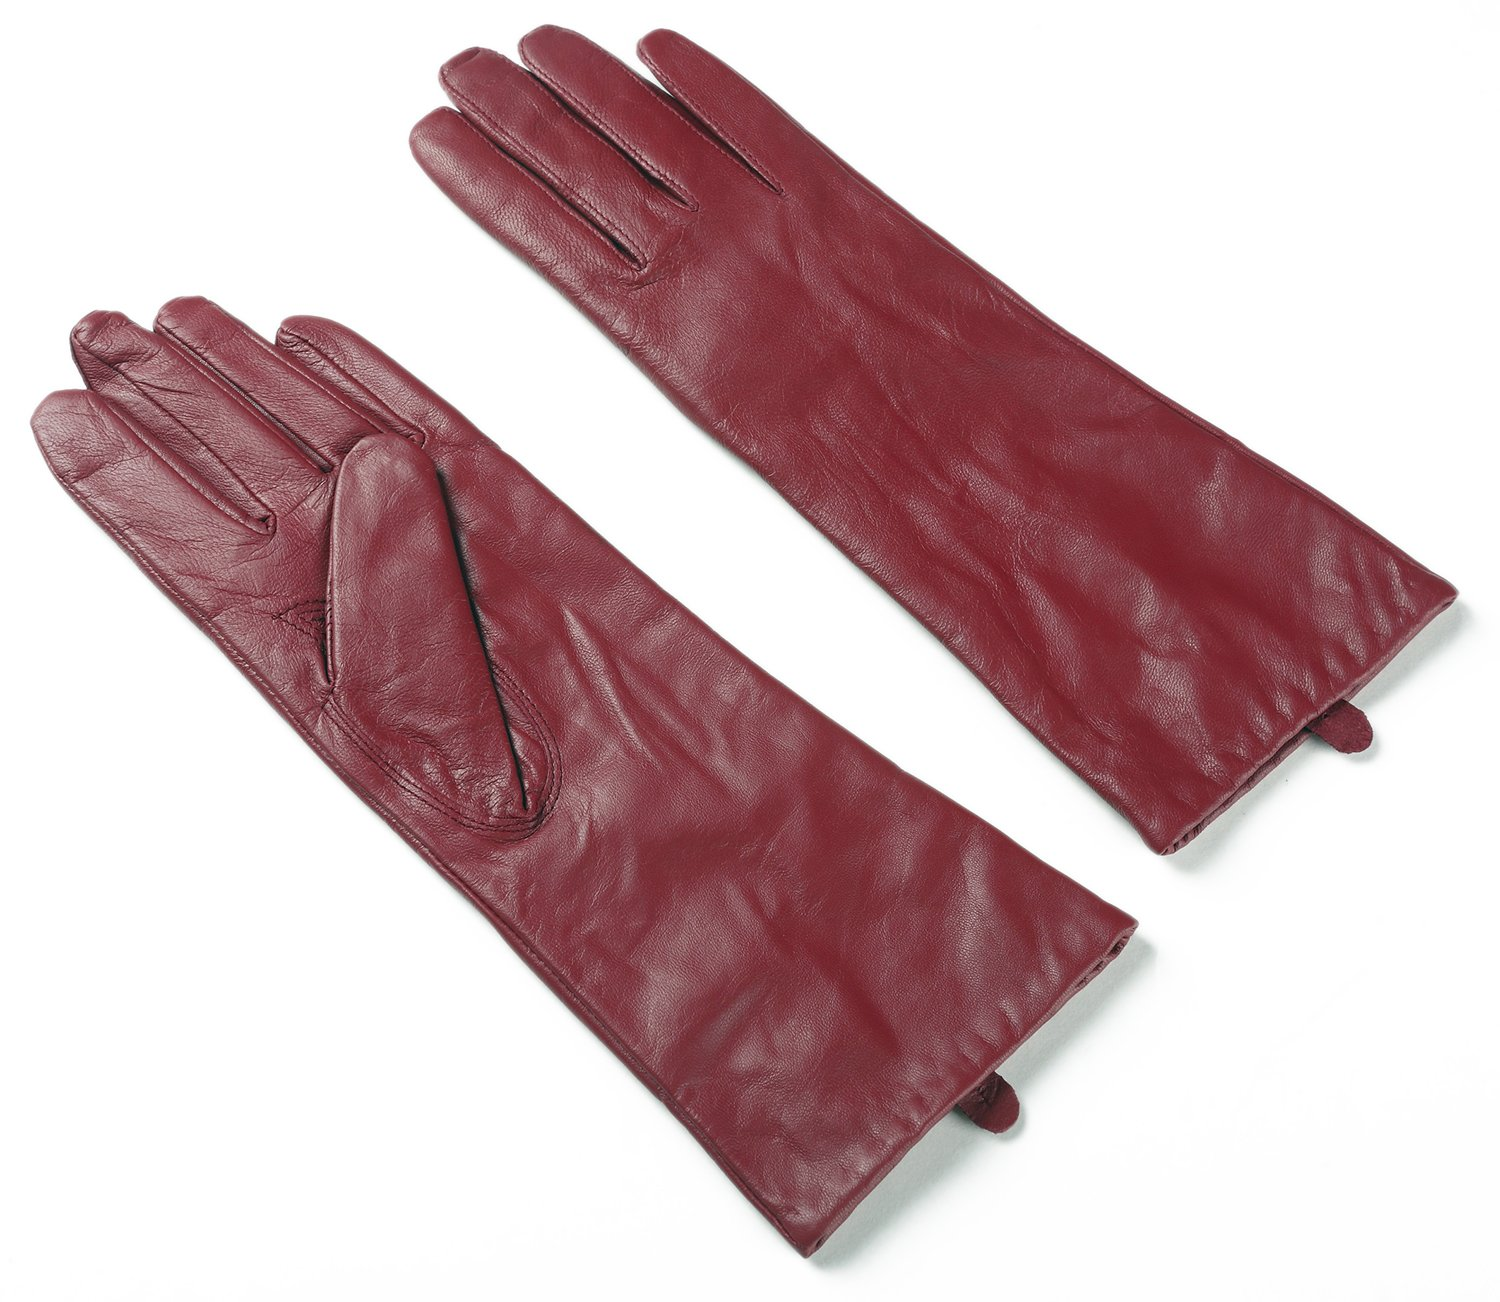 Ambesi Classic Women's Cashmere Lined Nappa Leather Winter Long Gloves Wine XL